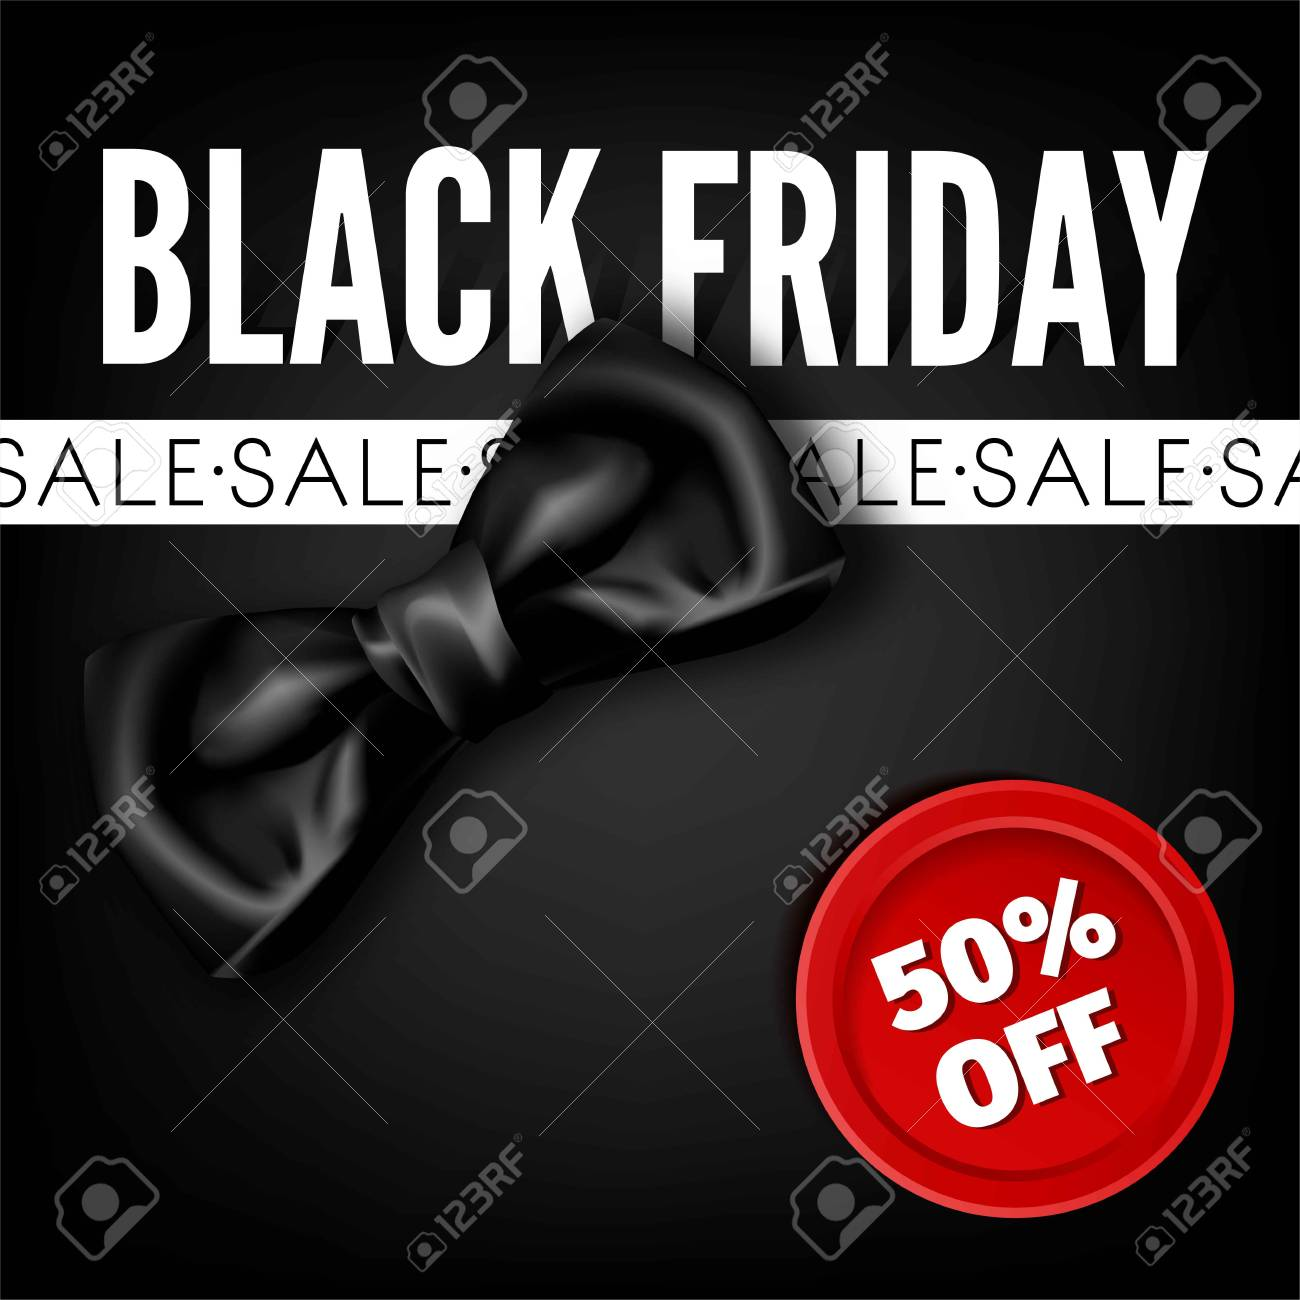 Black Friday Sale Discount Promo Offer Poster Or Advertising Royalty Free Cliparts Vectors And Stock Illustration Image 86924870